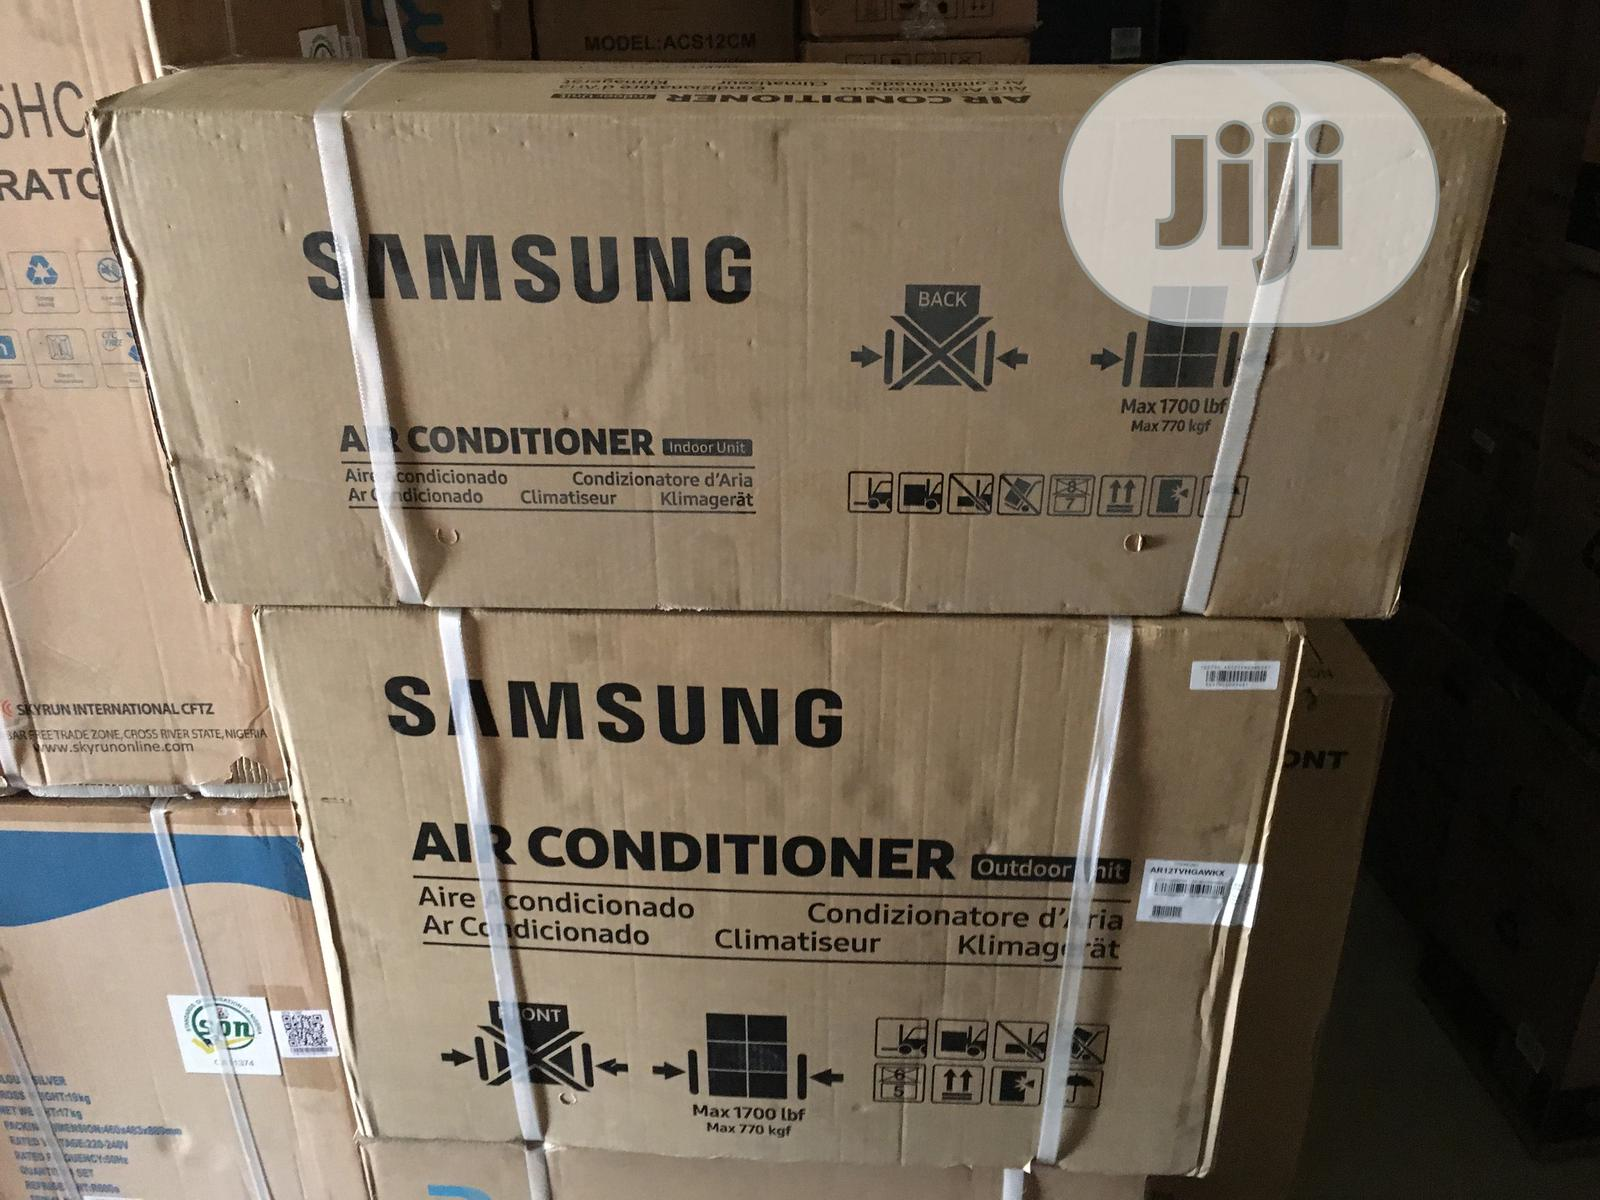 Samsung Original Inverter Spilt 1.5horse Power Air Condition | Home Appliances for sale in Ajah, Lagos State, Nigeria